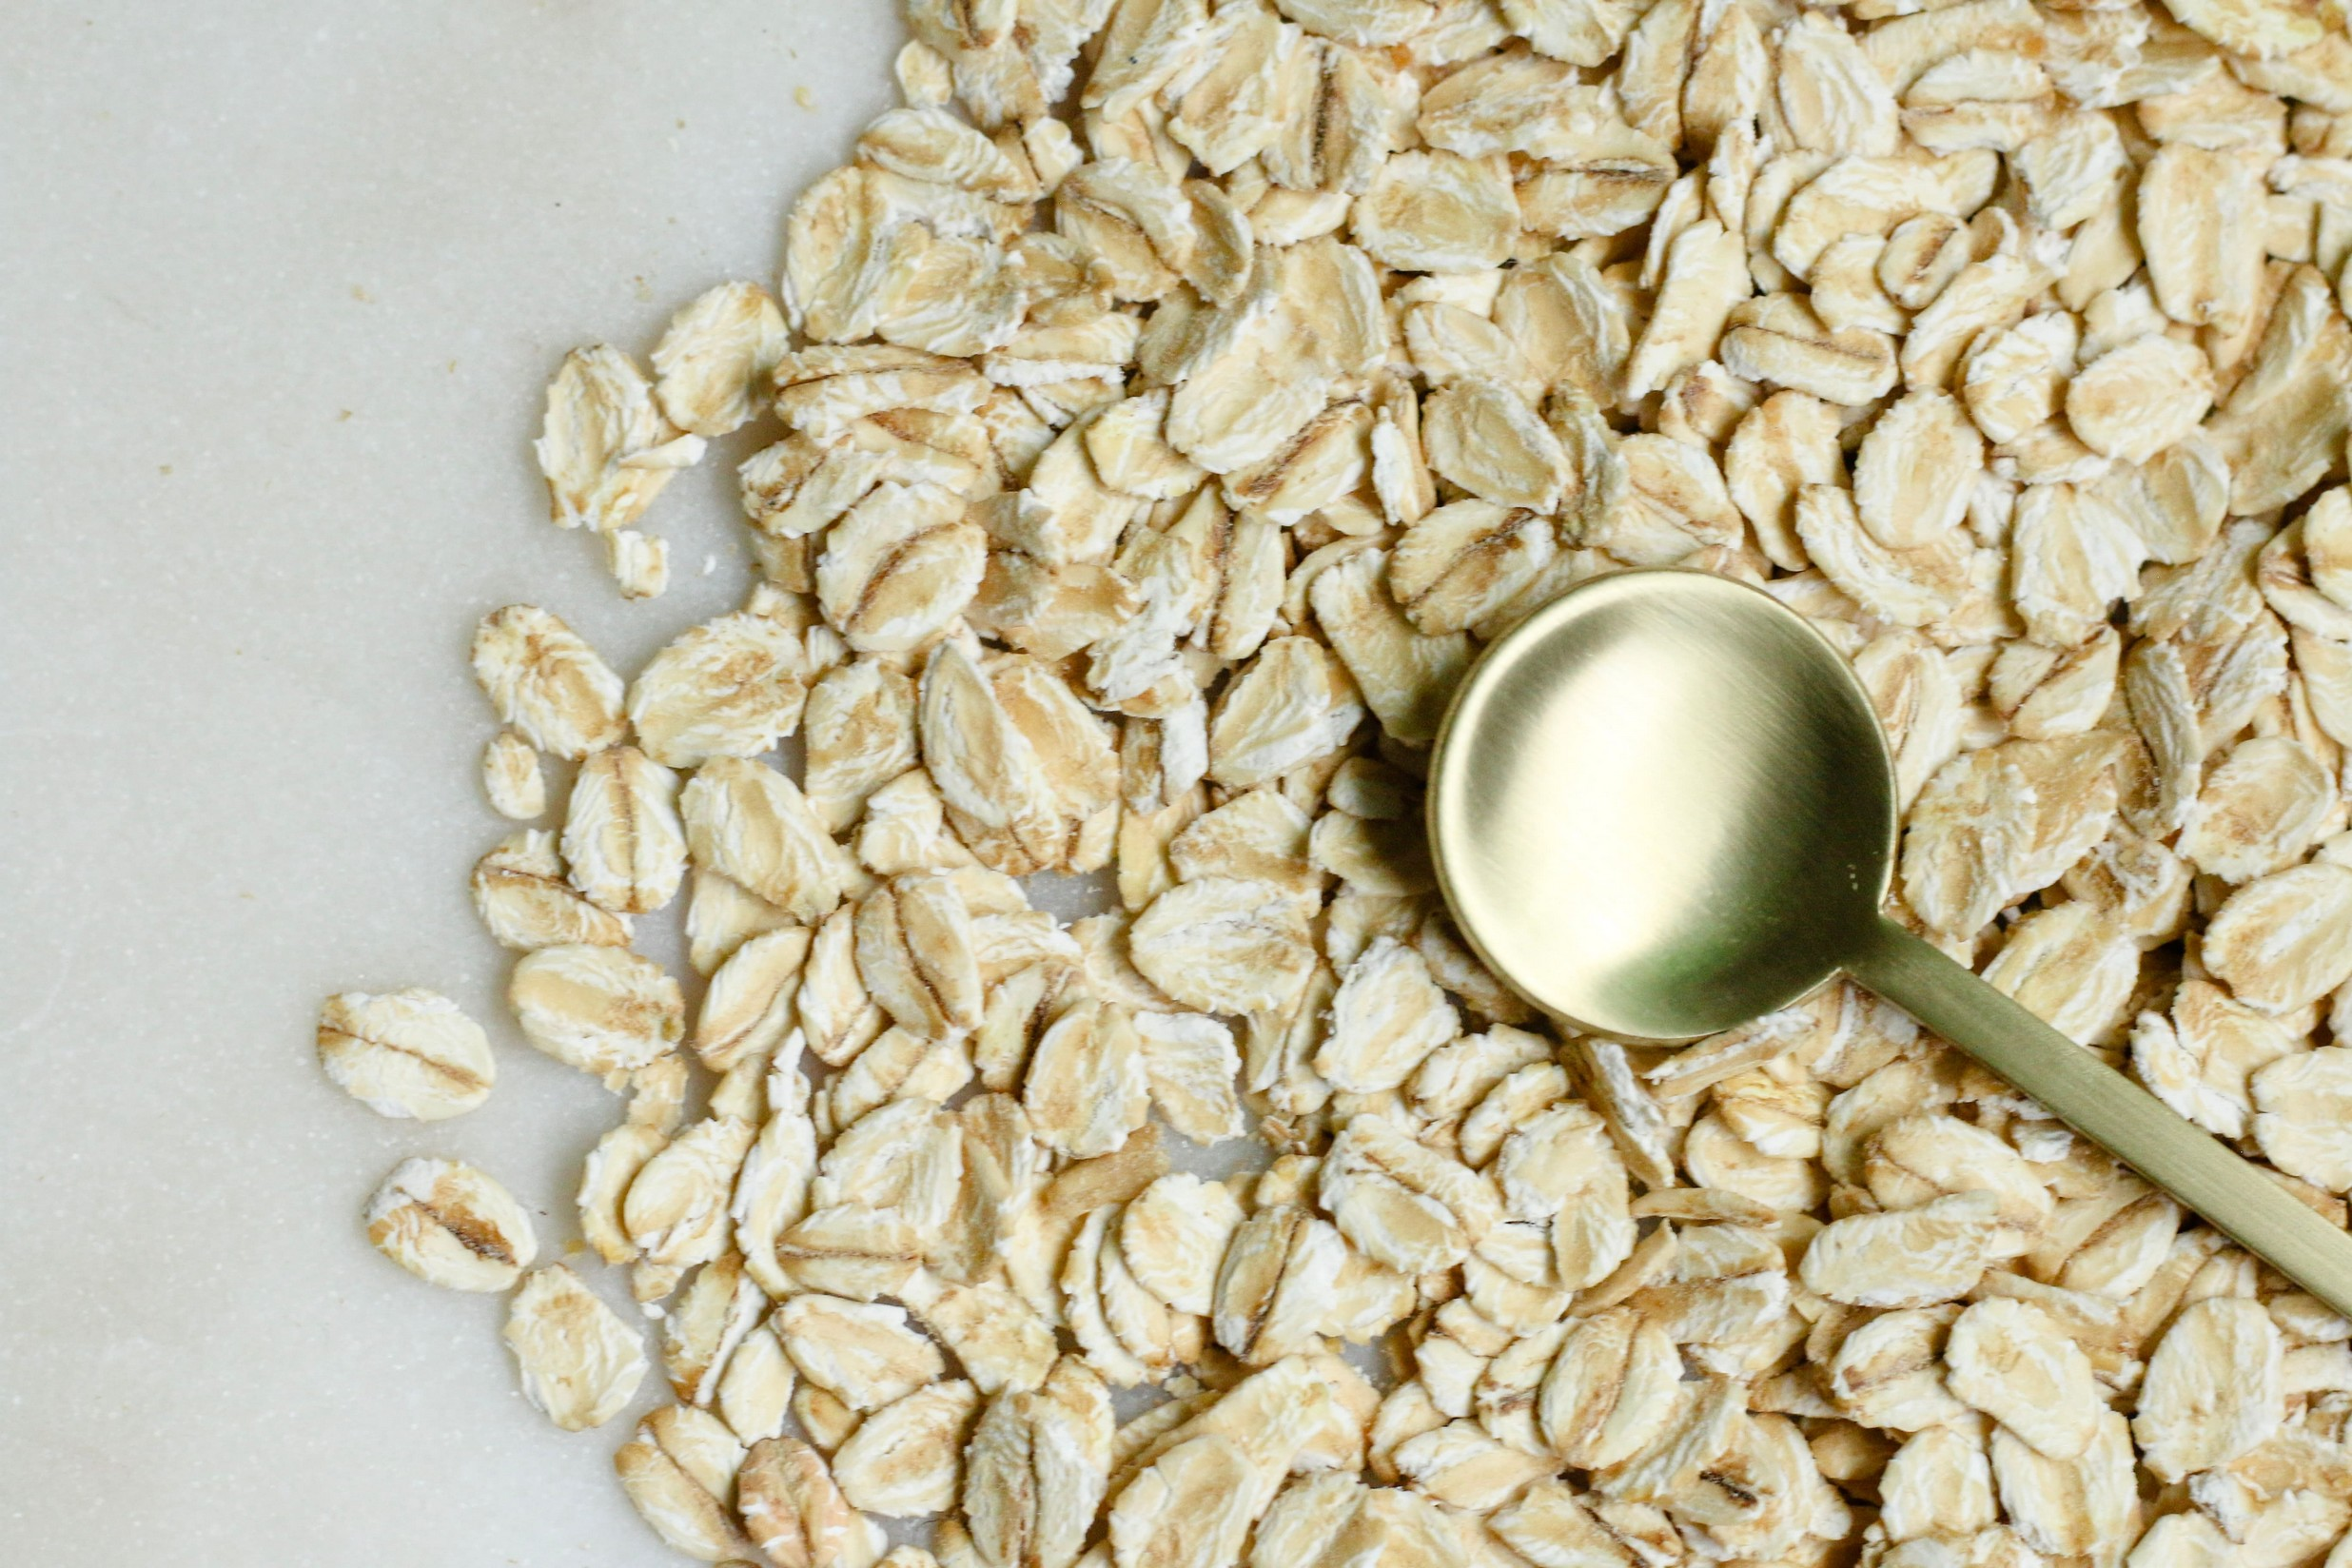 oats on a marble table, with a small golden spoon lay on top.